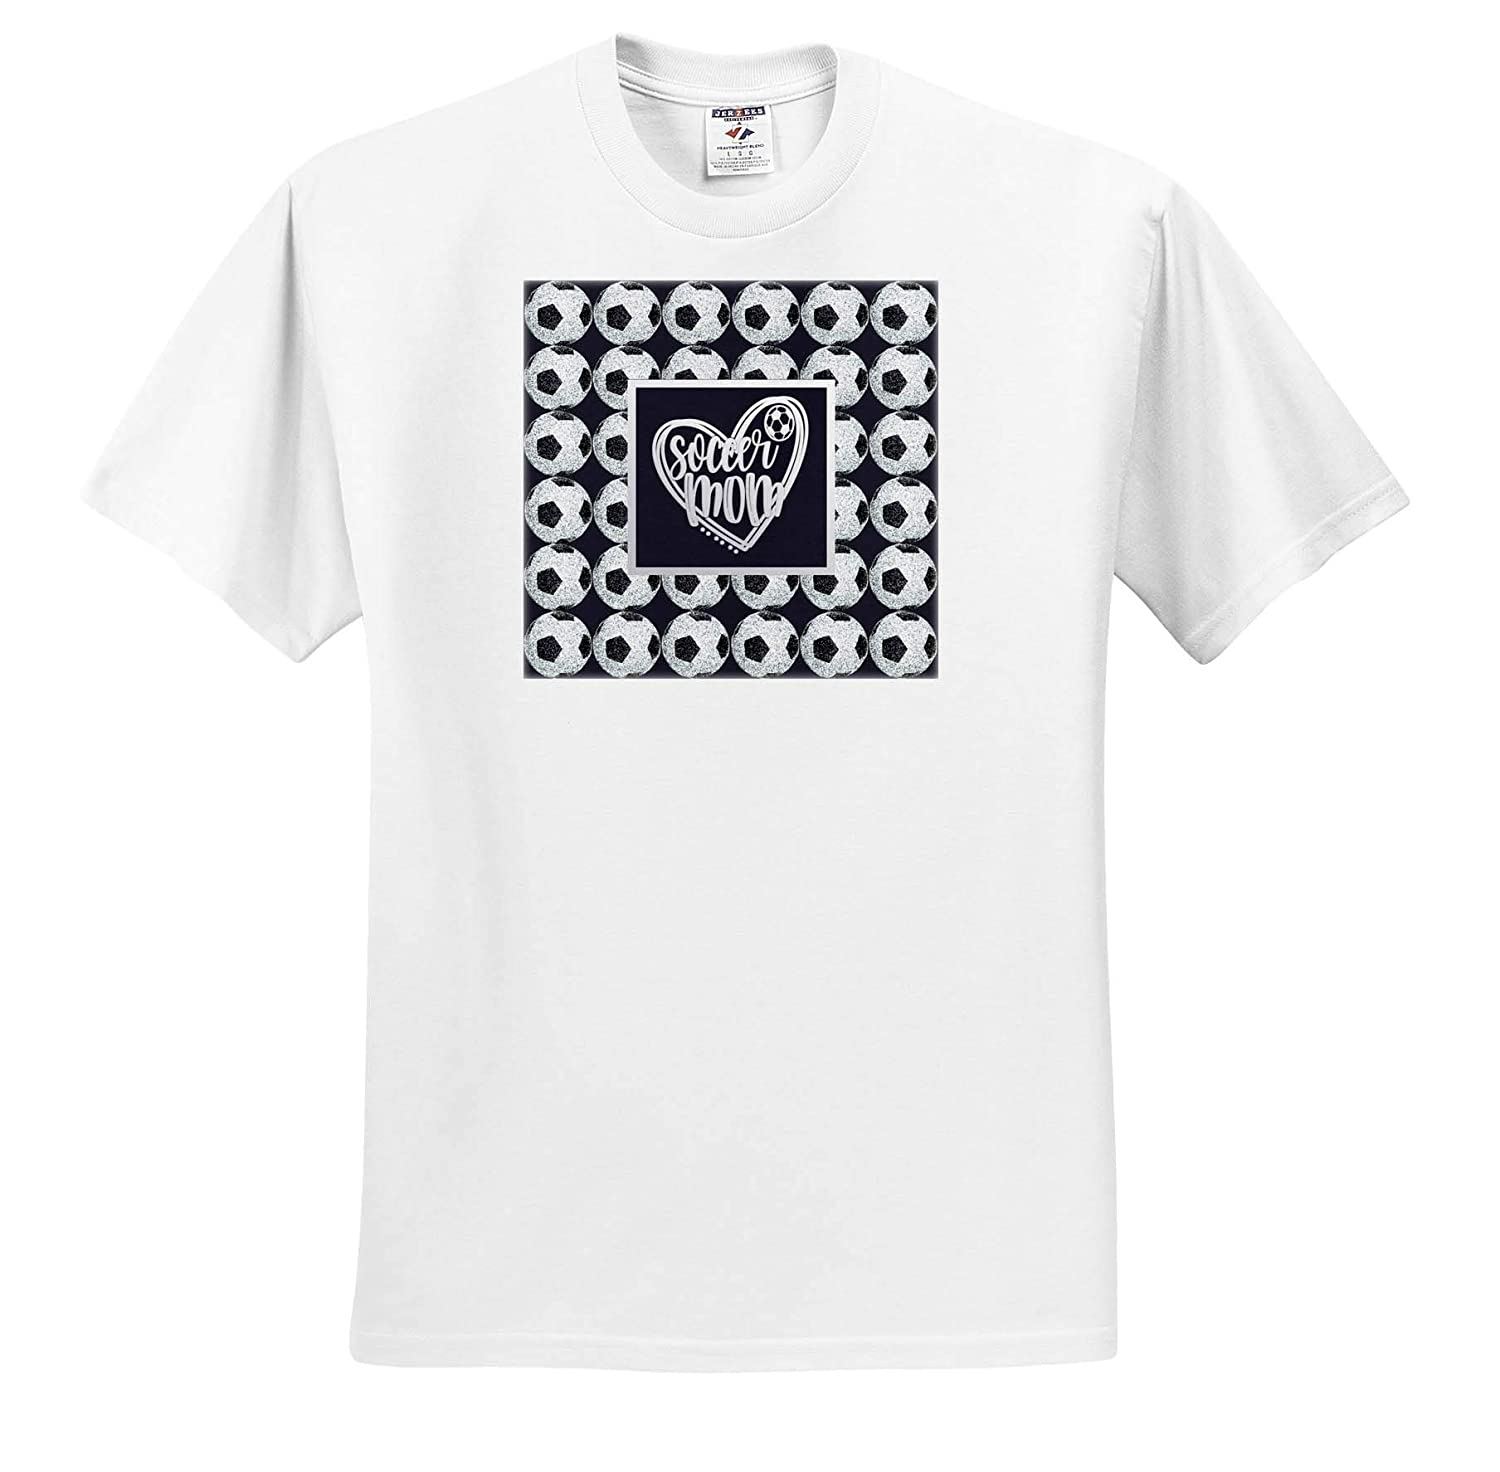 ts/_313342 Soccer Mom in Heart Adult T-Shirt XL Gray and Black 3dRose Beverly Turner Sports Design Soccer Ball Design